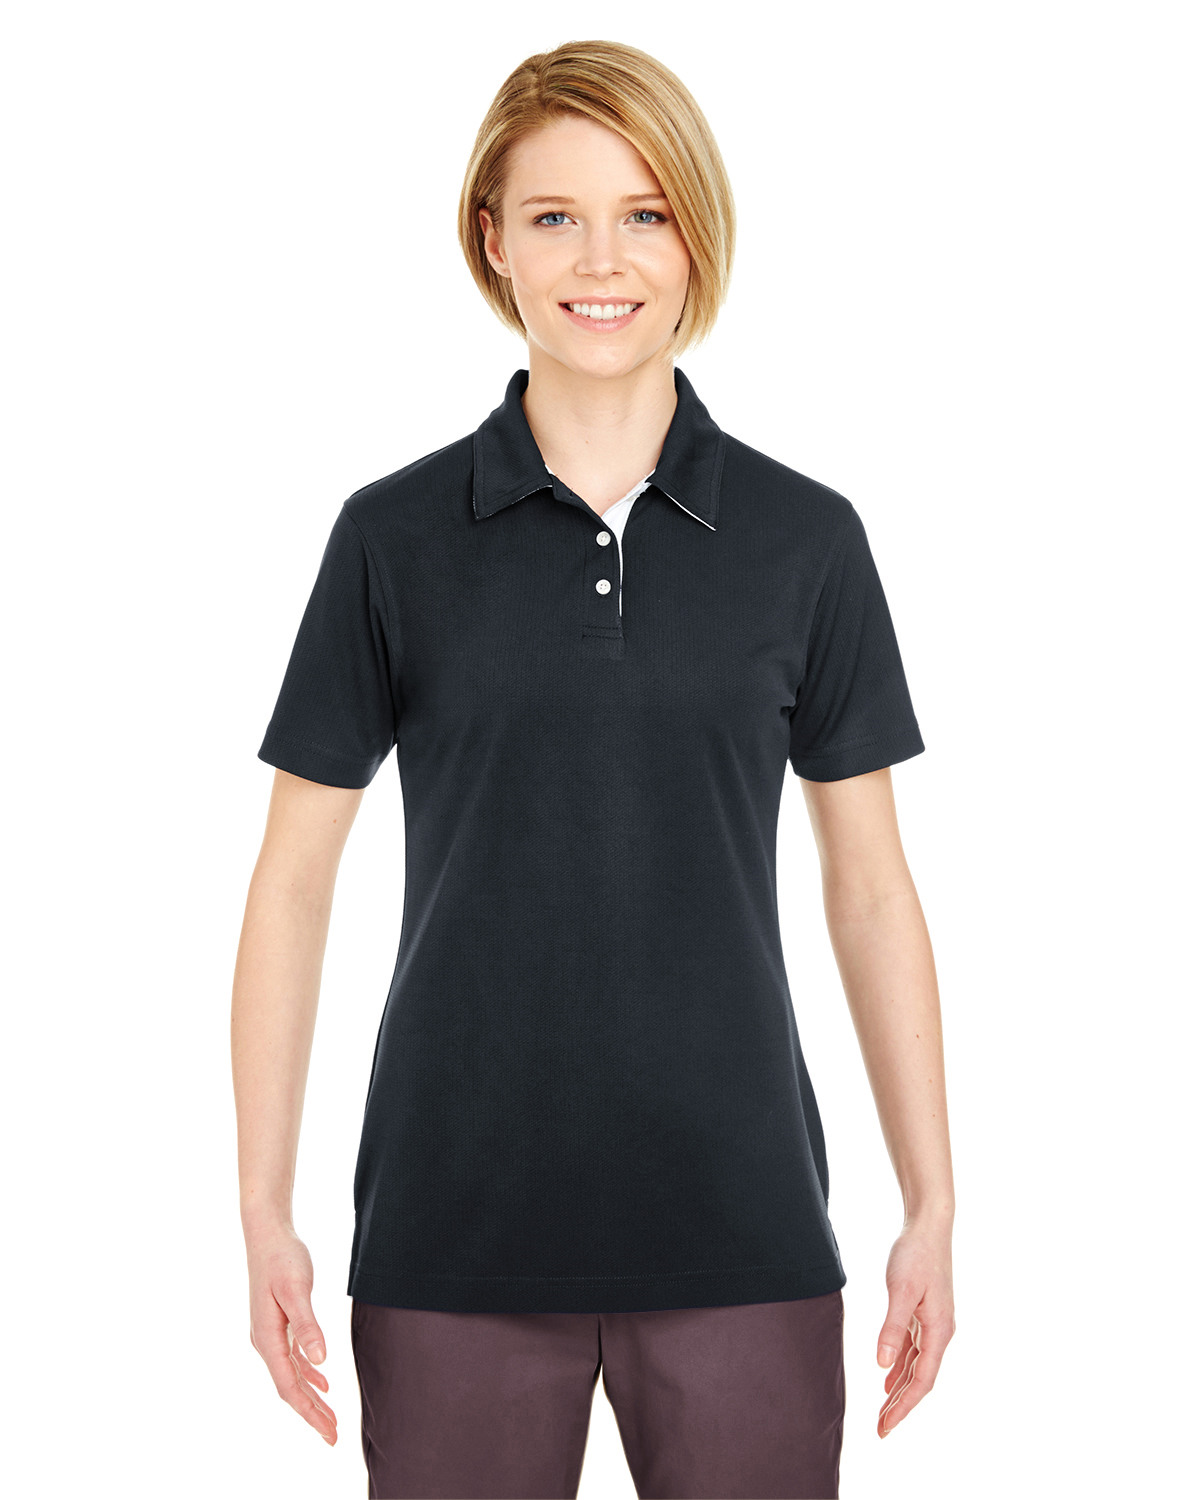 Ladies' Platinum Performance Birdseye Polo with TempControl Technology